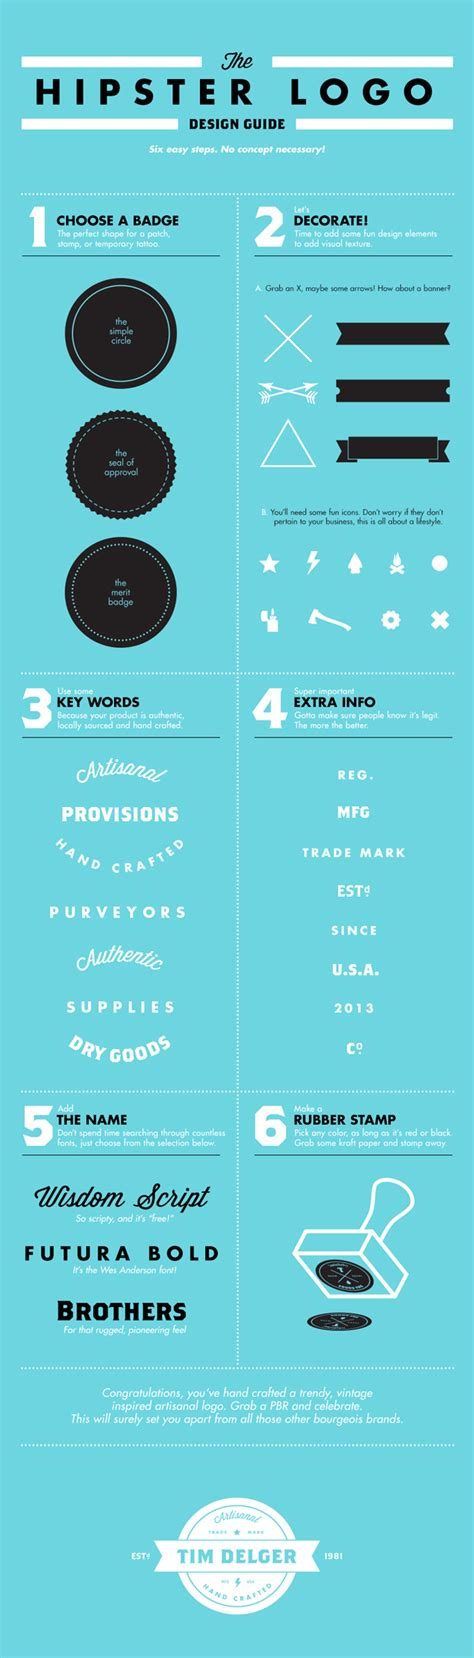 design a logo guide the hipster logo design guide on how to create an